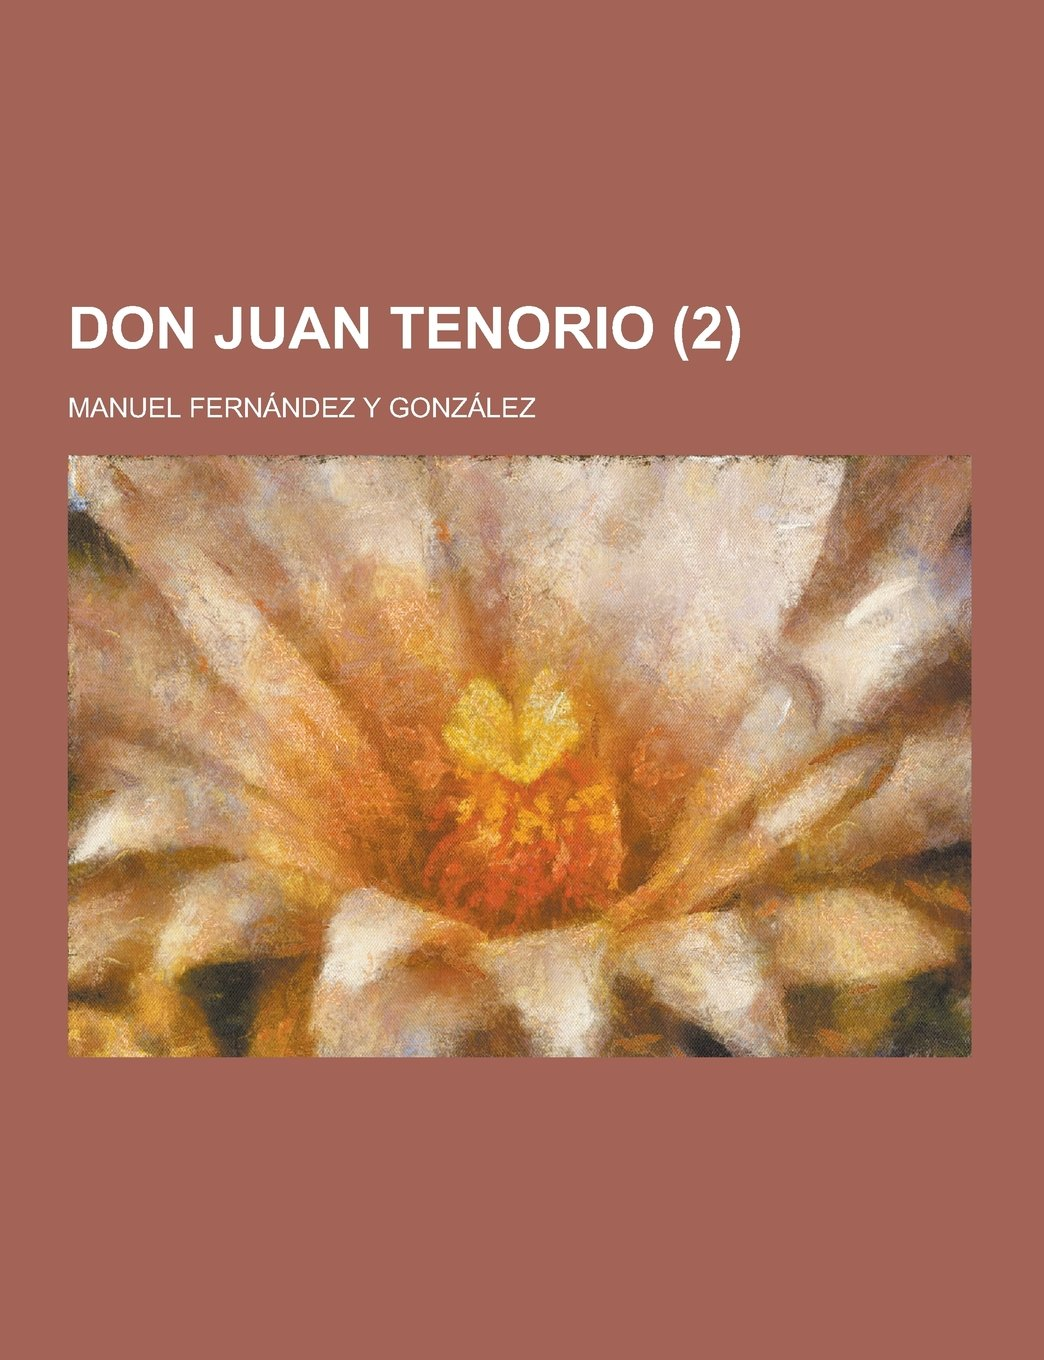 Don Juan Tenorio (2)  (Spanish Edition): Manuel Fernandez y. Gonzalez: 9781230739649: Amazon.com: Books